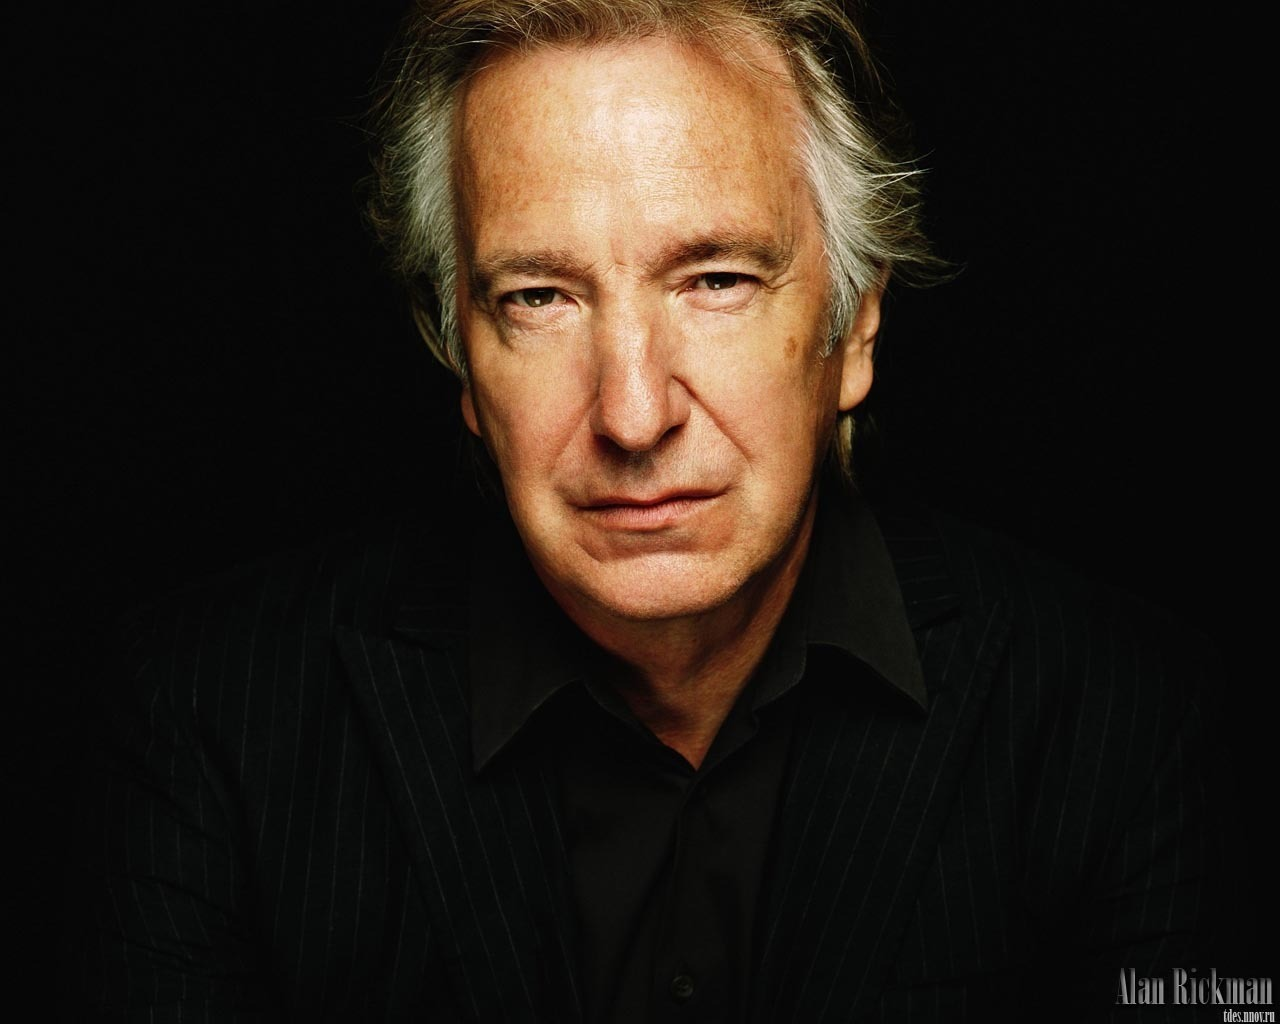 Alan Rickman Needs His Own Show \u2013 Seven Inches of Your Time